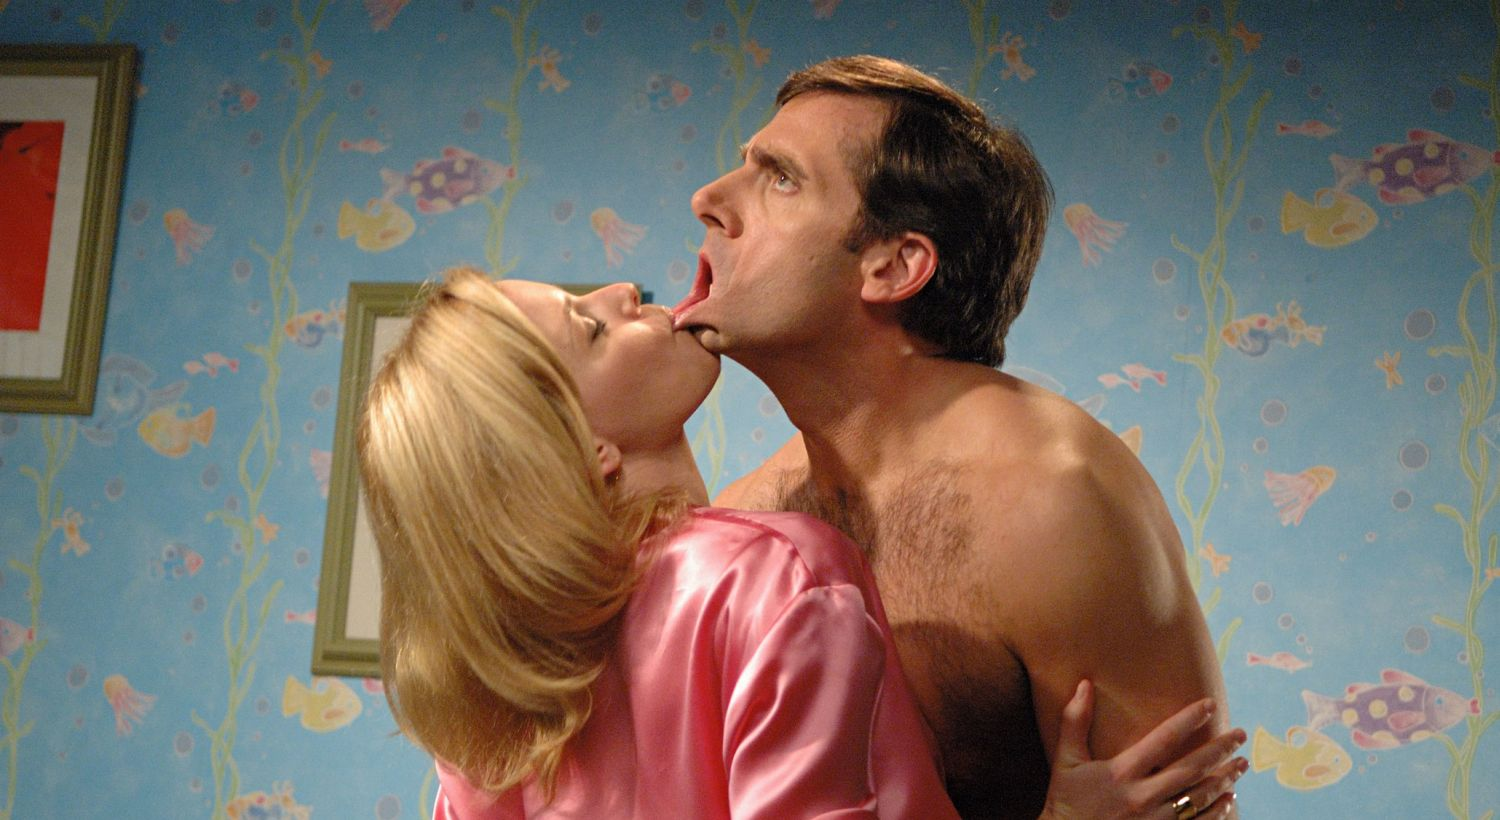 The 40 Year Old Virgin 2005 Theatrical Or Unrated This Or That Edition